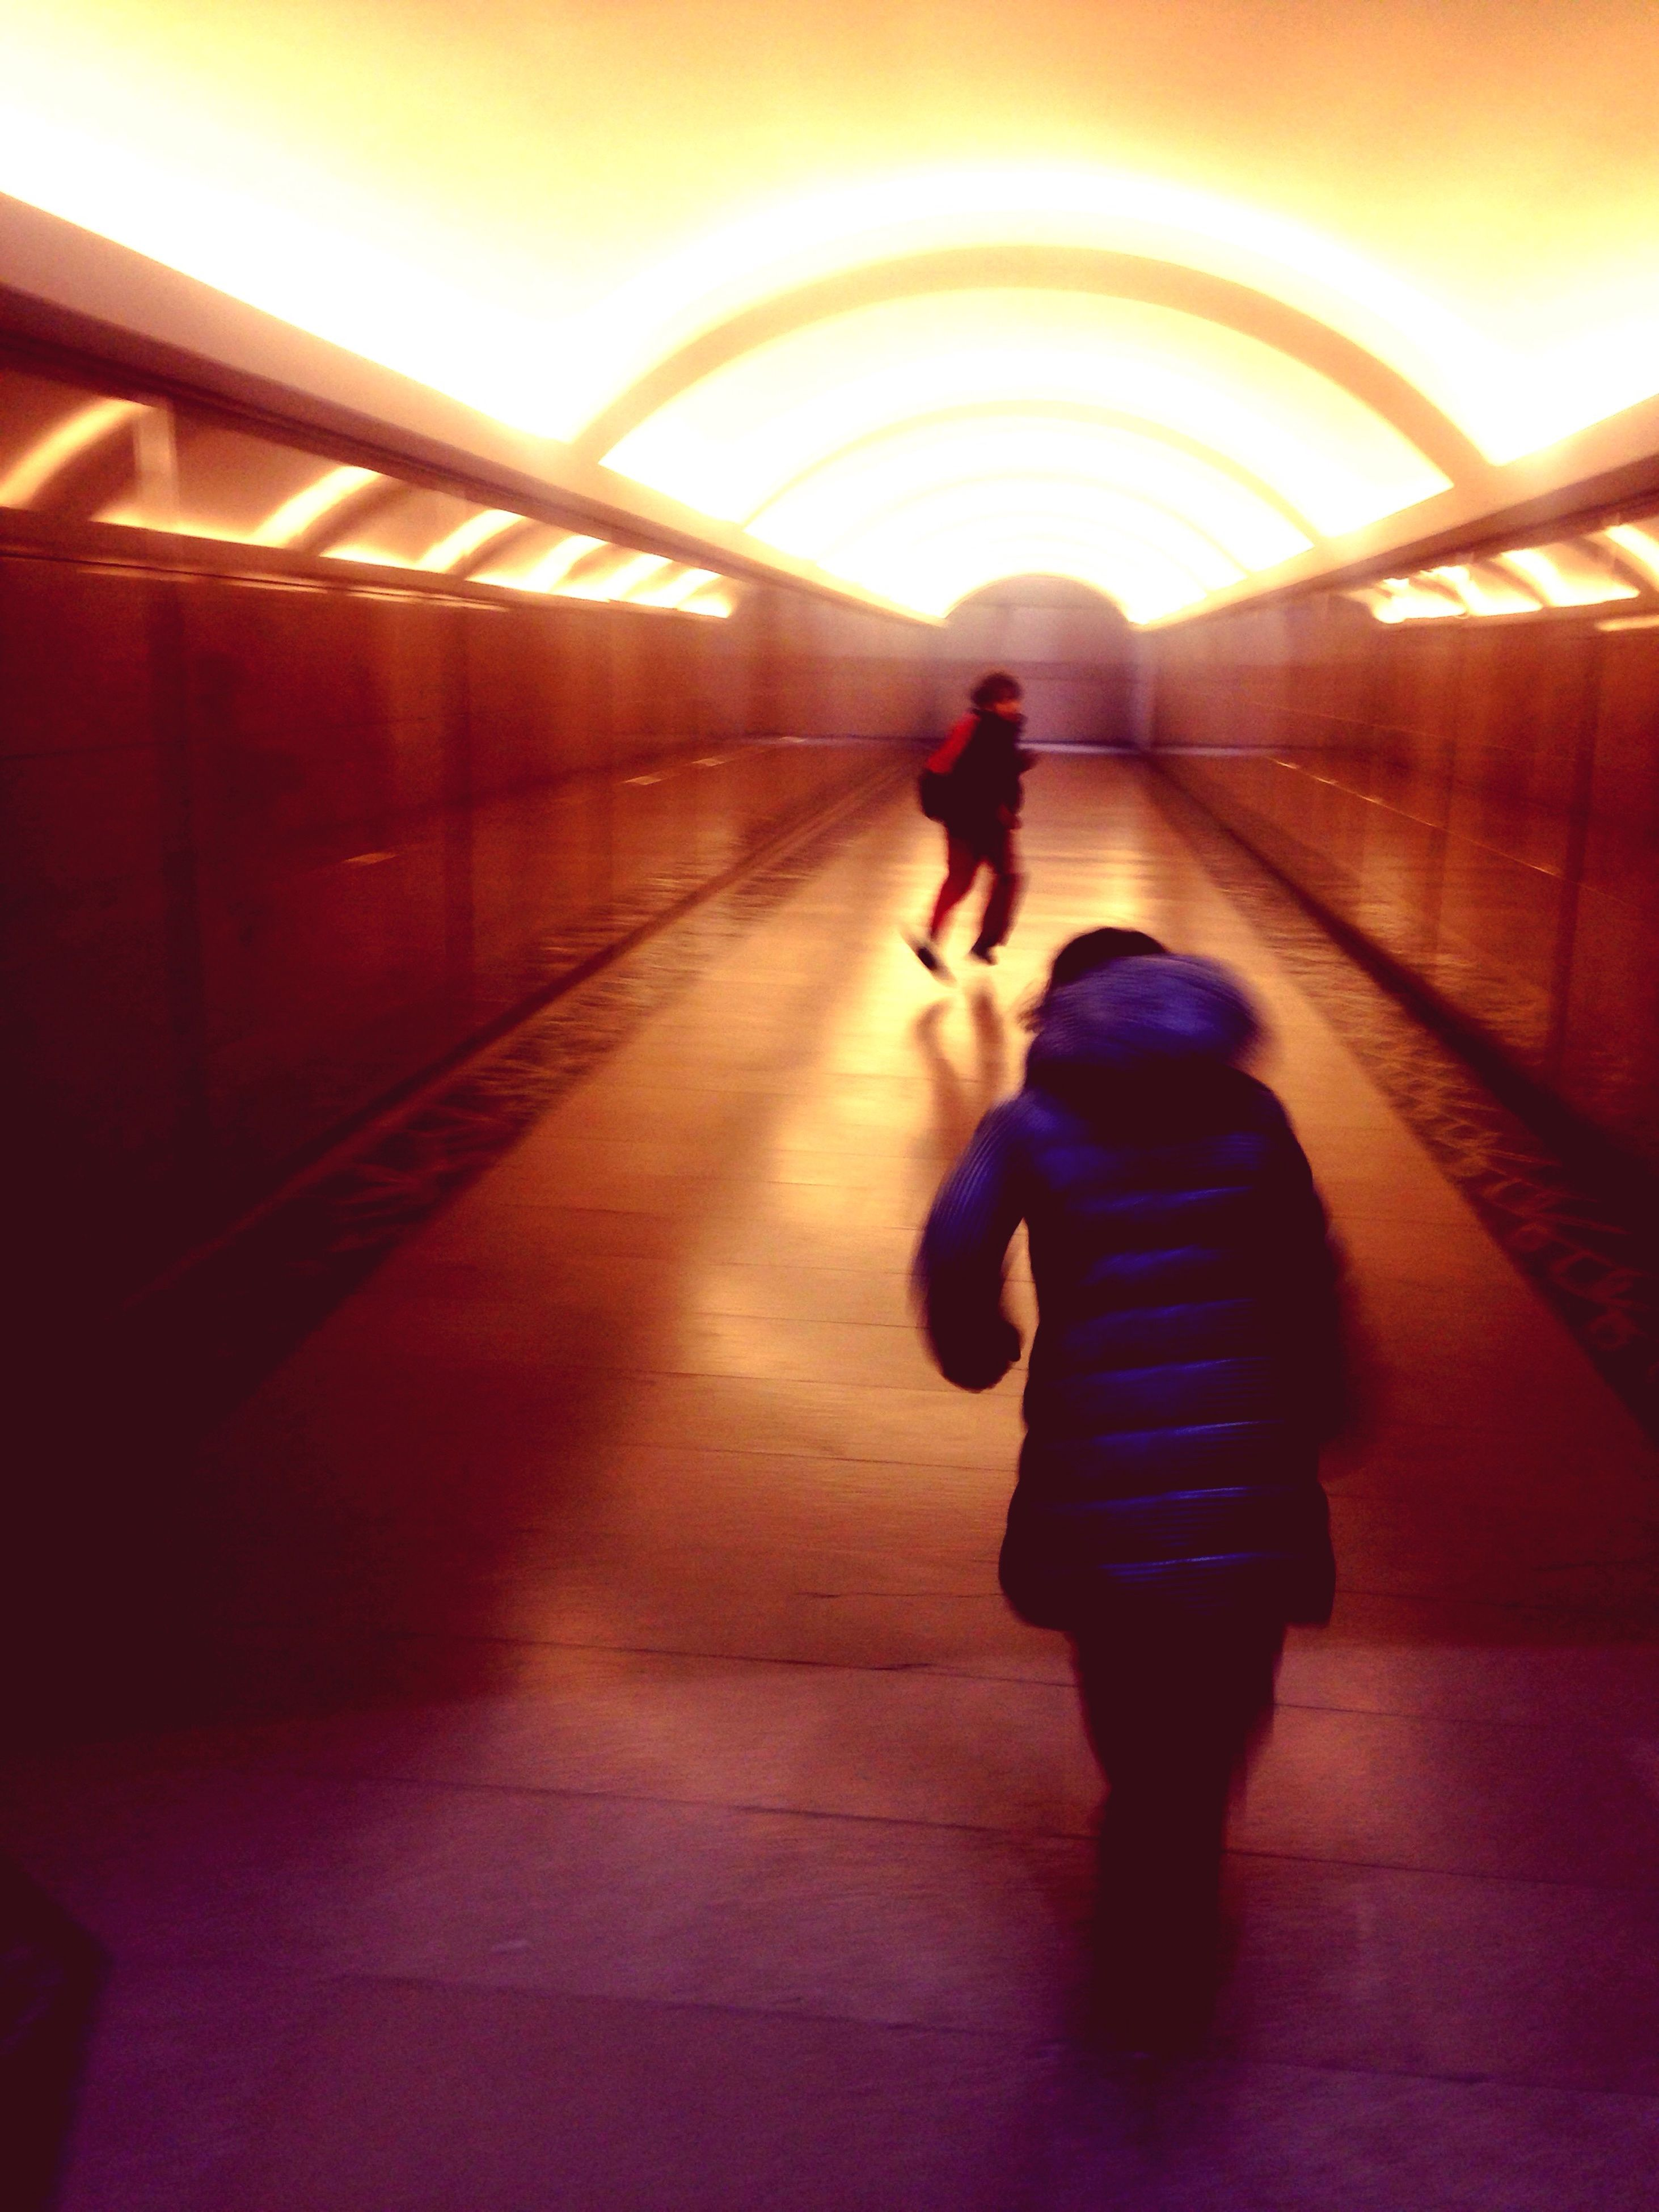 full length, indoors, lifestyles, walking, rear view, the way forward, leisure activity, architecture, built structure, standing, men, railing, tunnel, illuminated, silhouette, diminishing perspective, connection, casual clothing